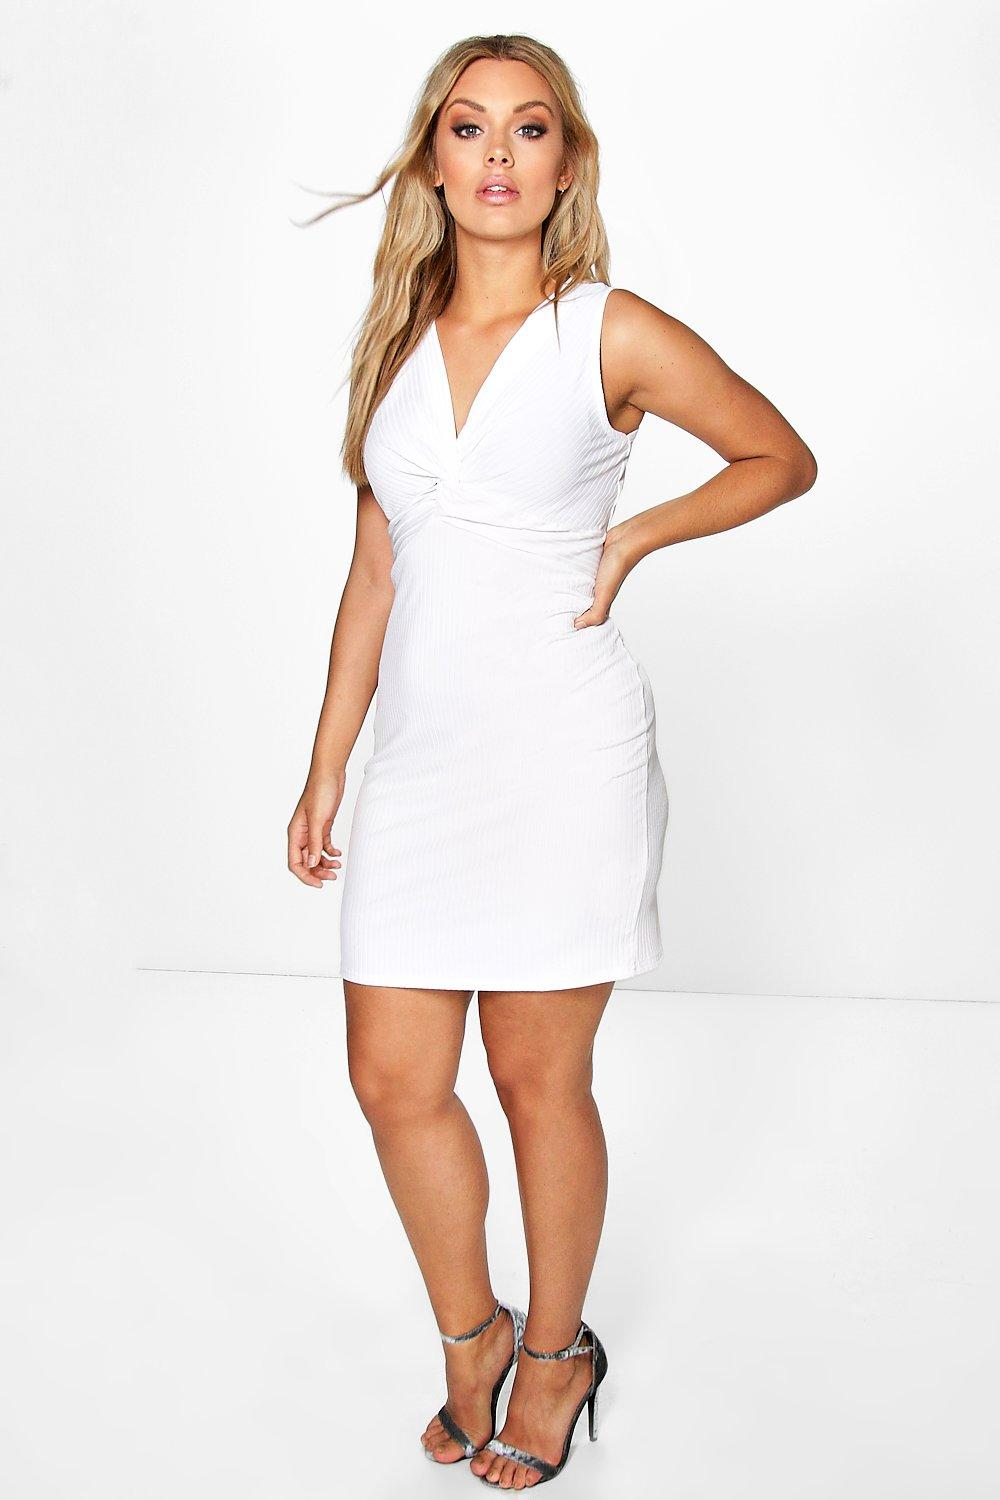 Lottie Knot Front Rib Dress - white